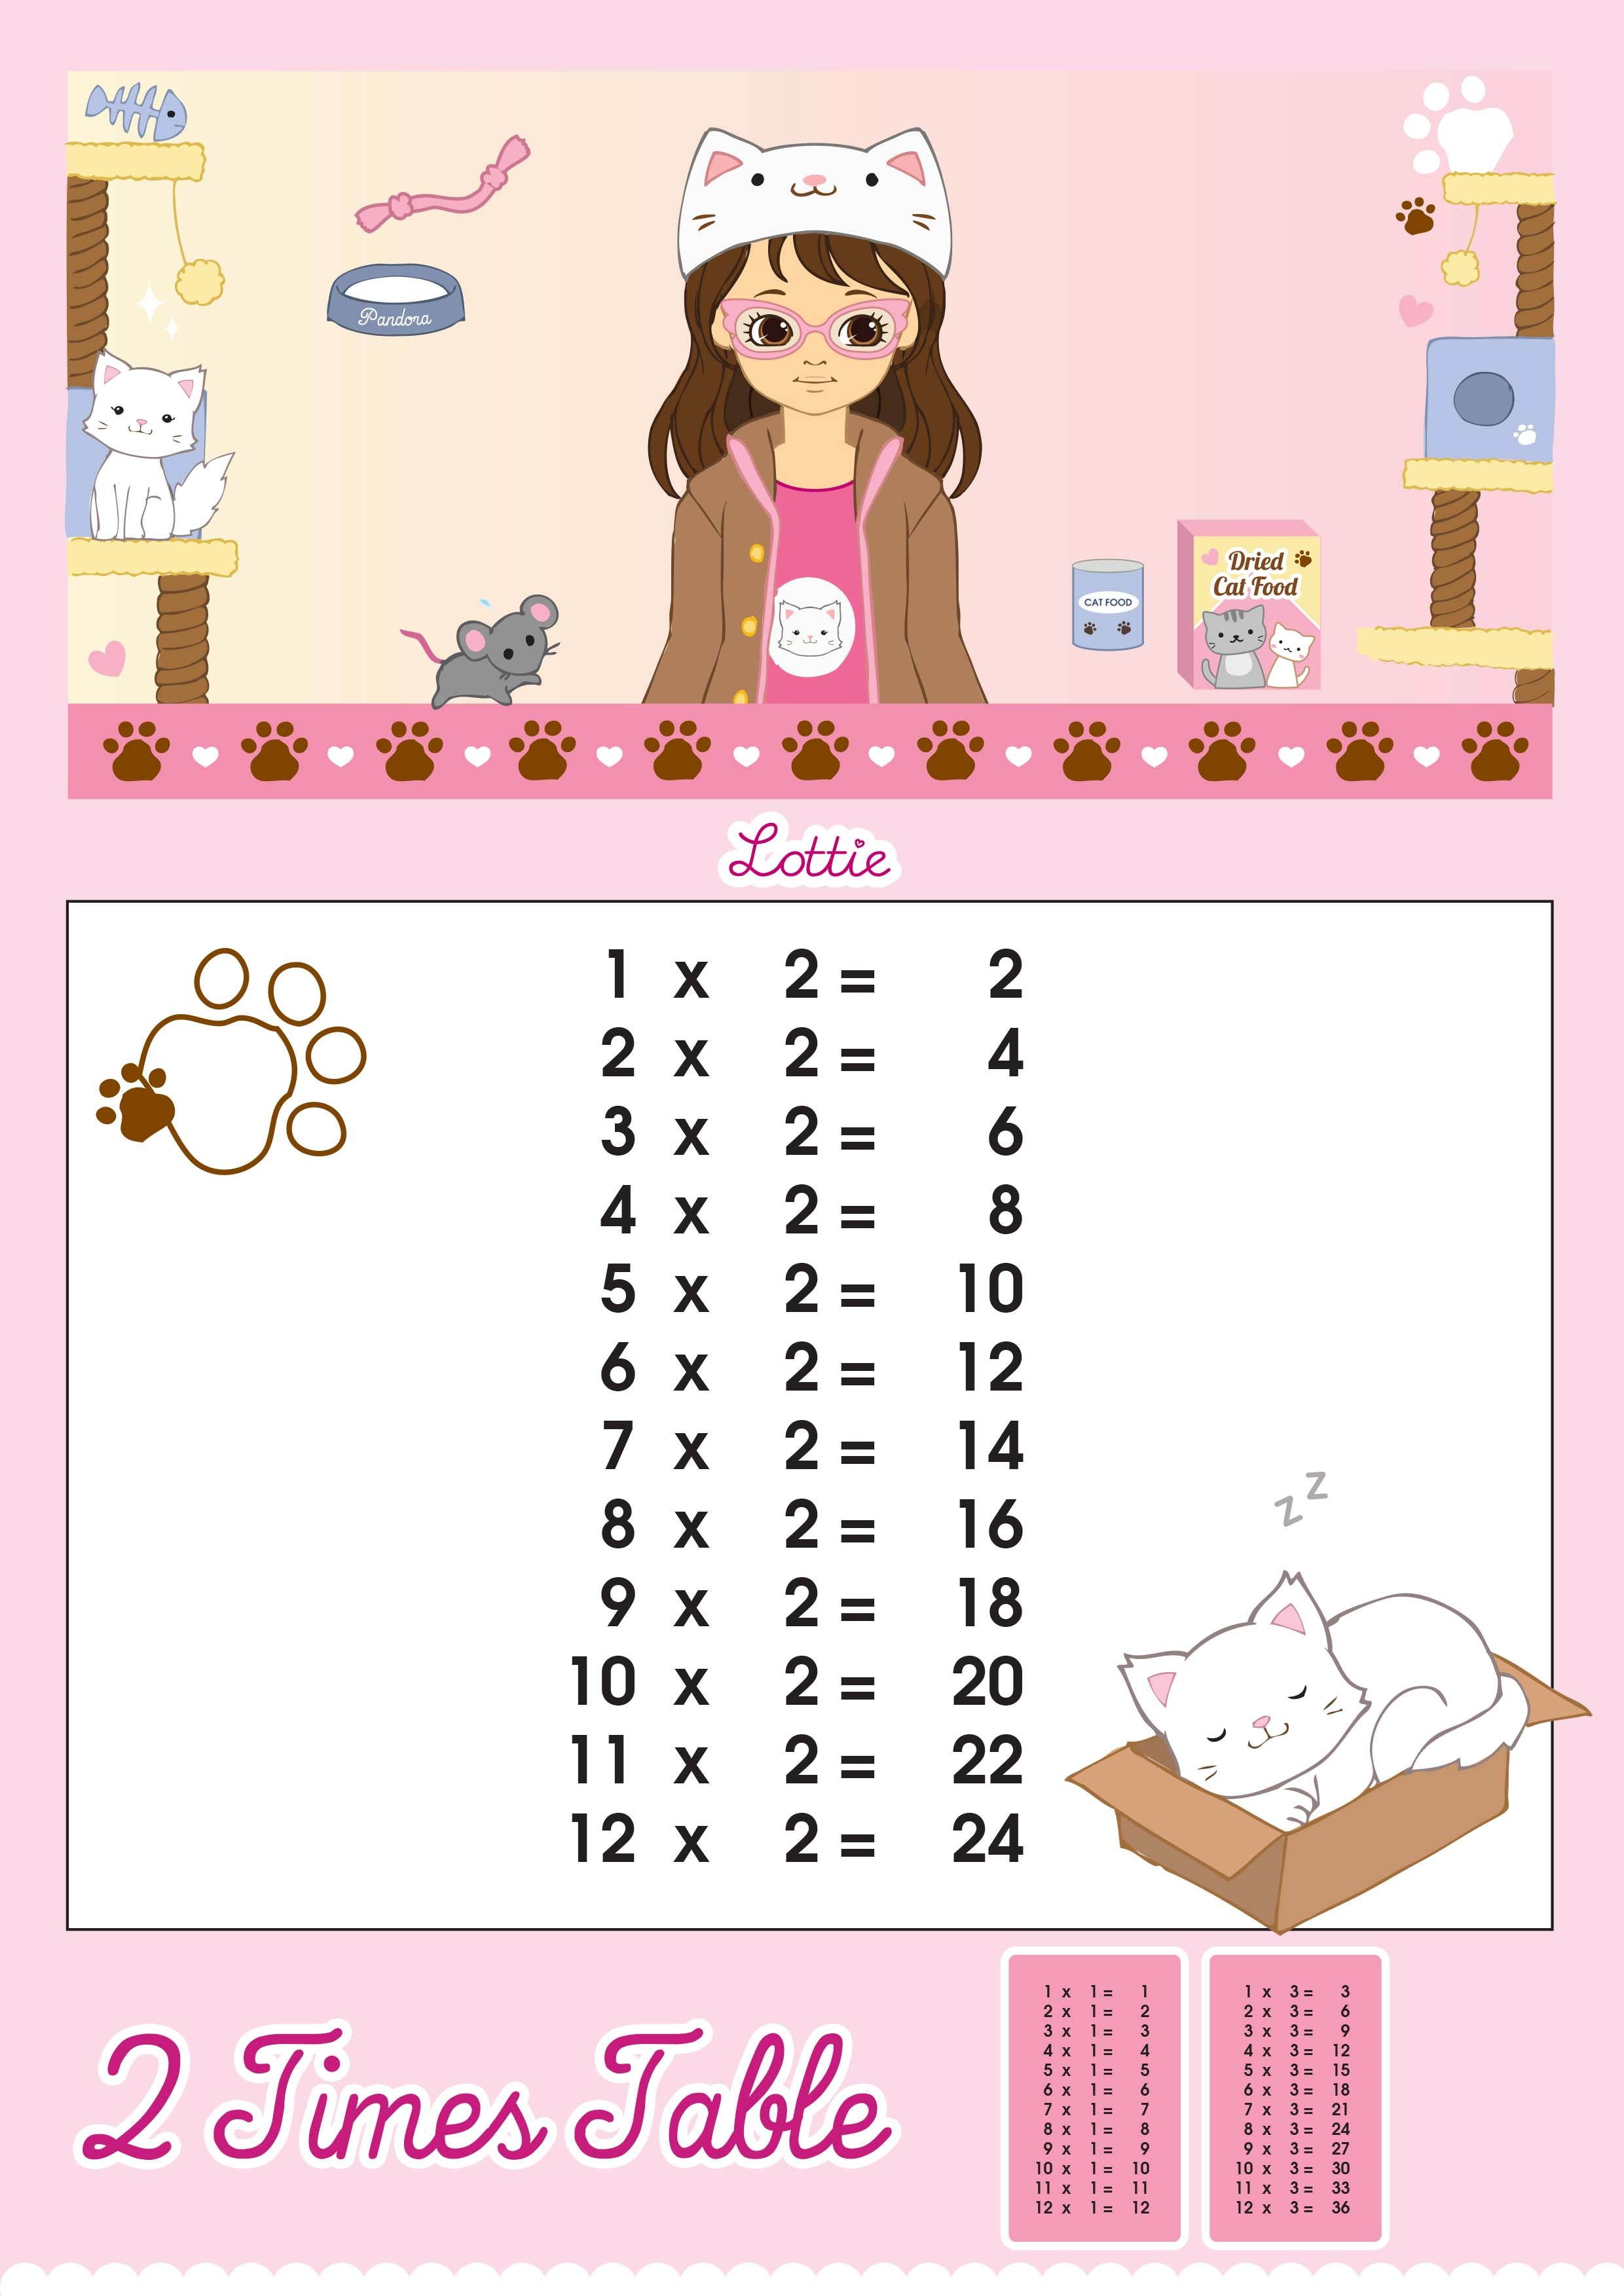 2 Times Table Printable Chart Lottie Dolls